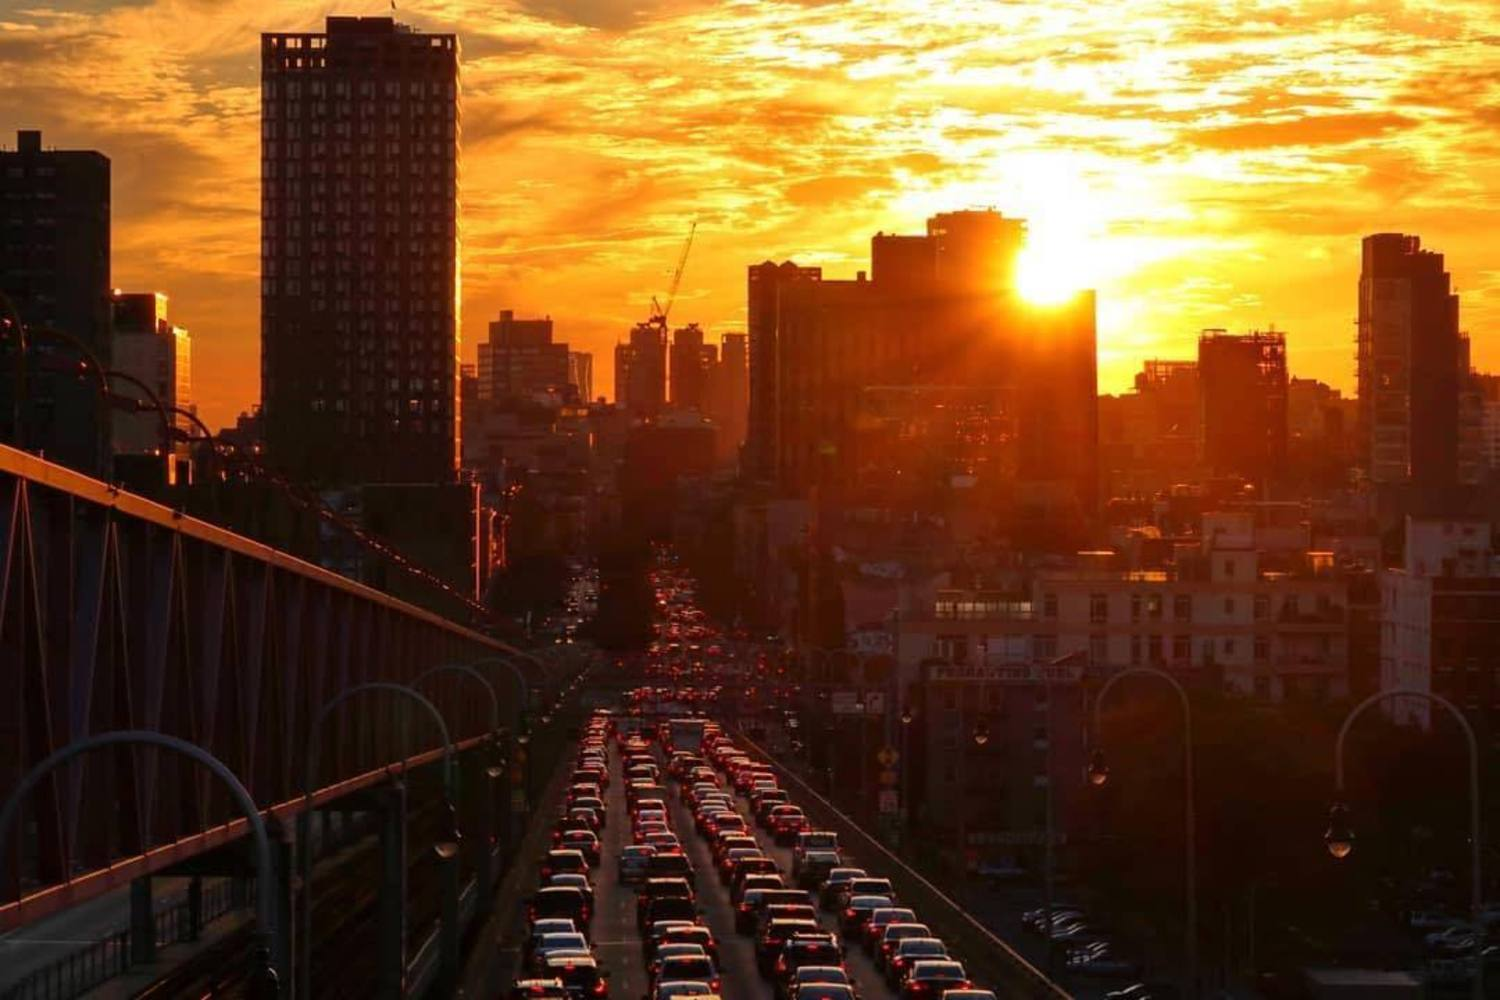 Williamsburg Bridge, New York, New York. Photo via @chihoboken #viewingnyc #newyork #newyorkcity #nyc #sunsets